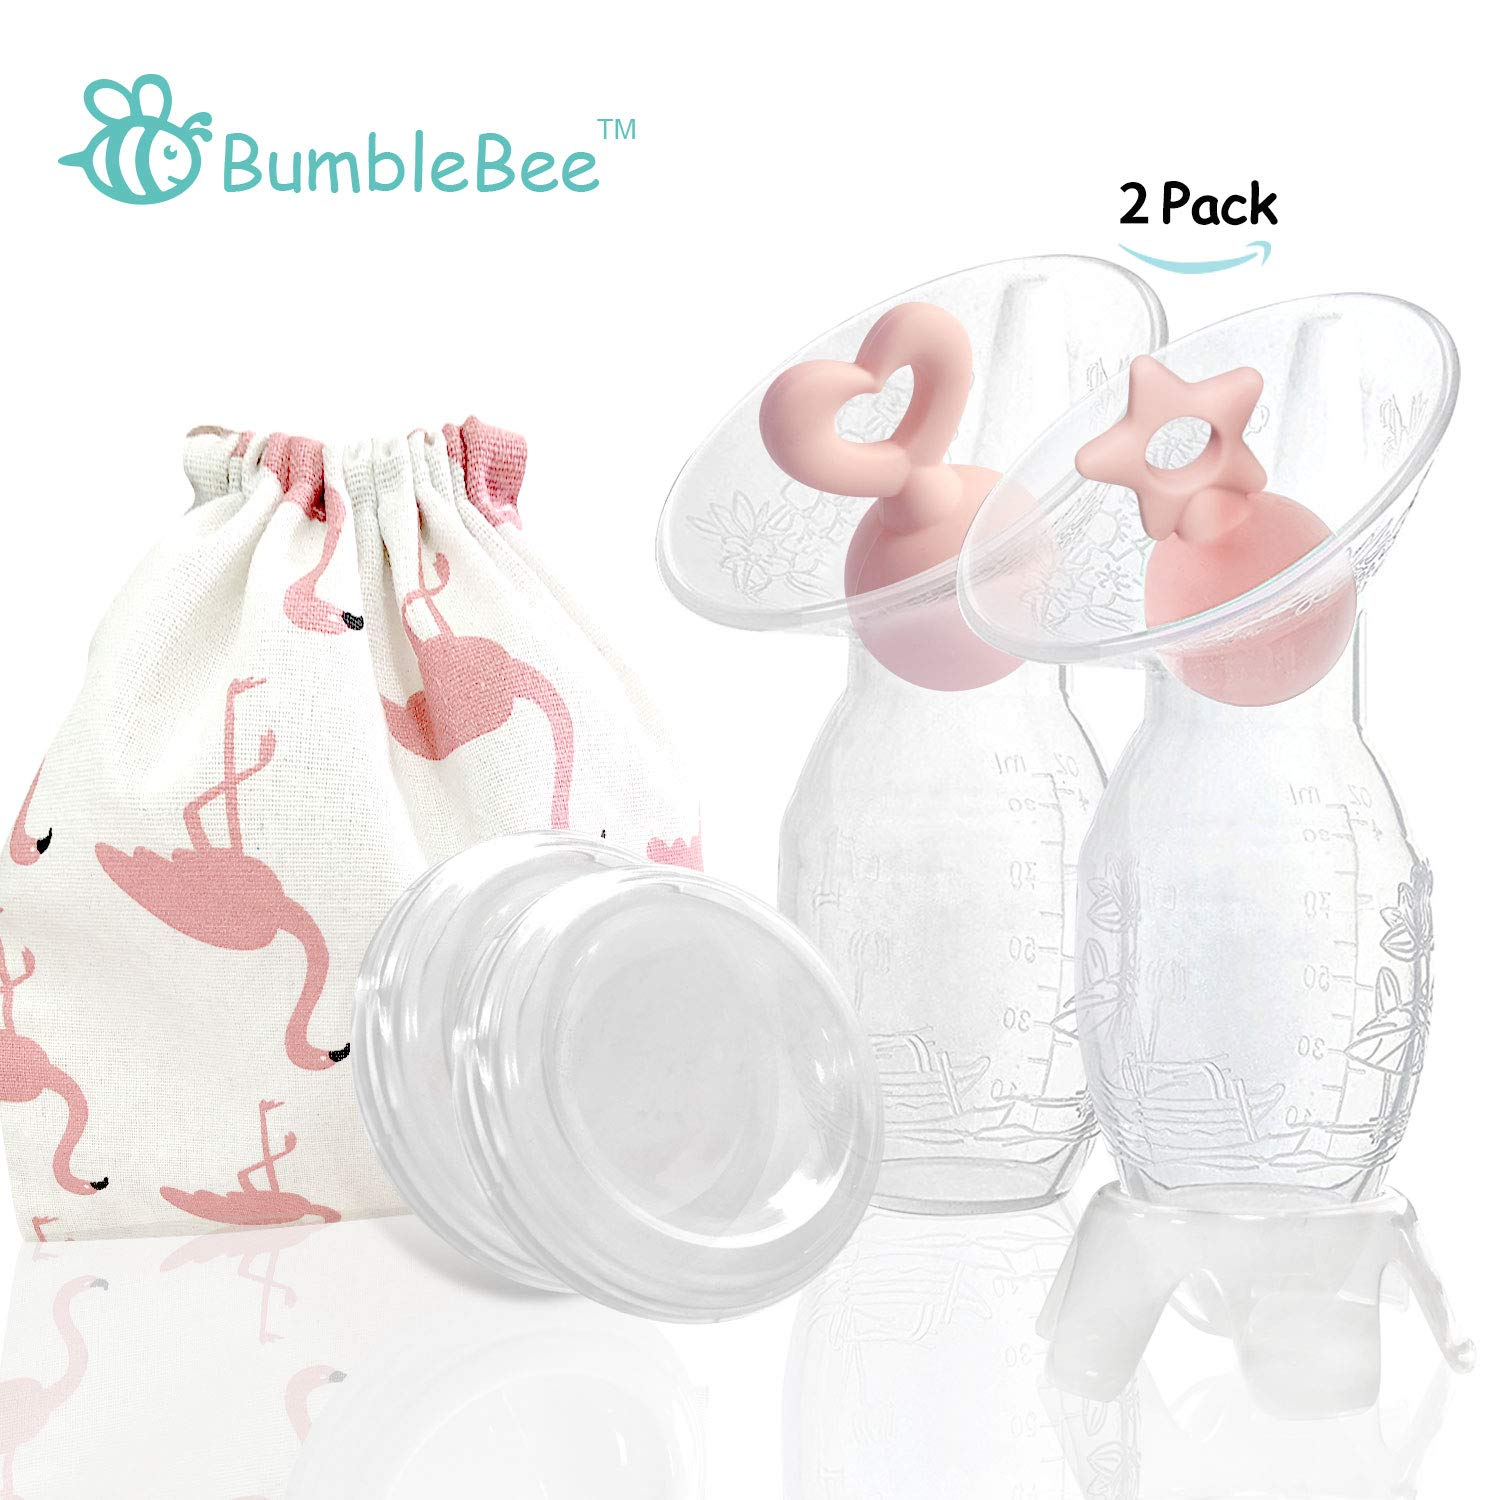 Bumblebee Manual Breast Pump with 2 Pack Breastfeeding Milk Saver Pink Star &Heart Stopper& lid in Gift Box Breastpump 100% Food Grade Silicone bpa PVC and Phthalate Free